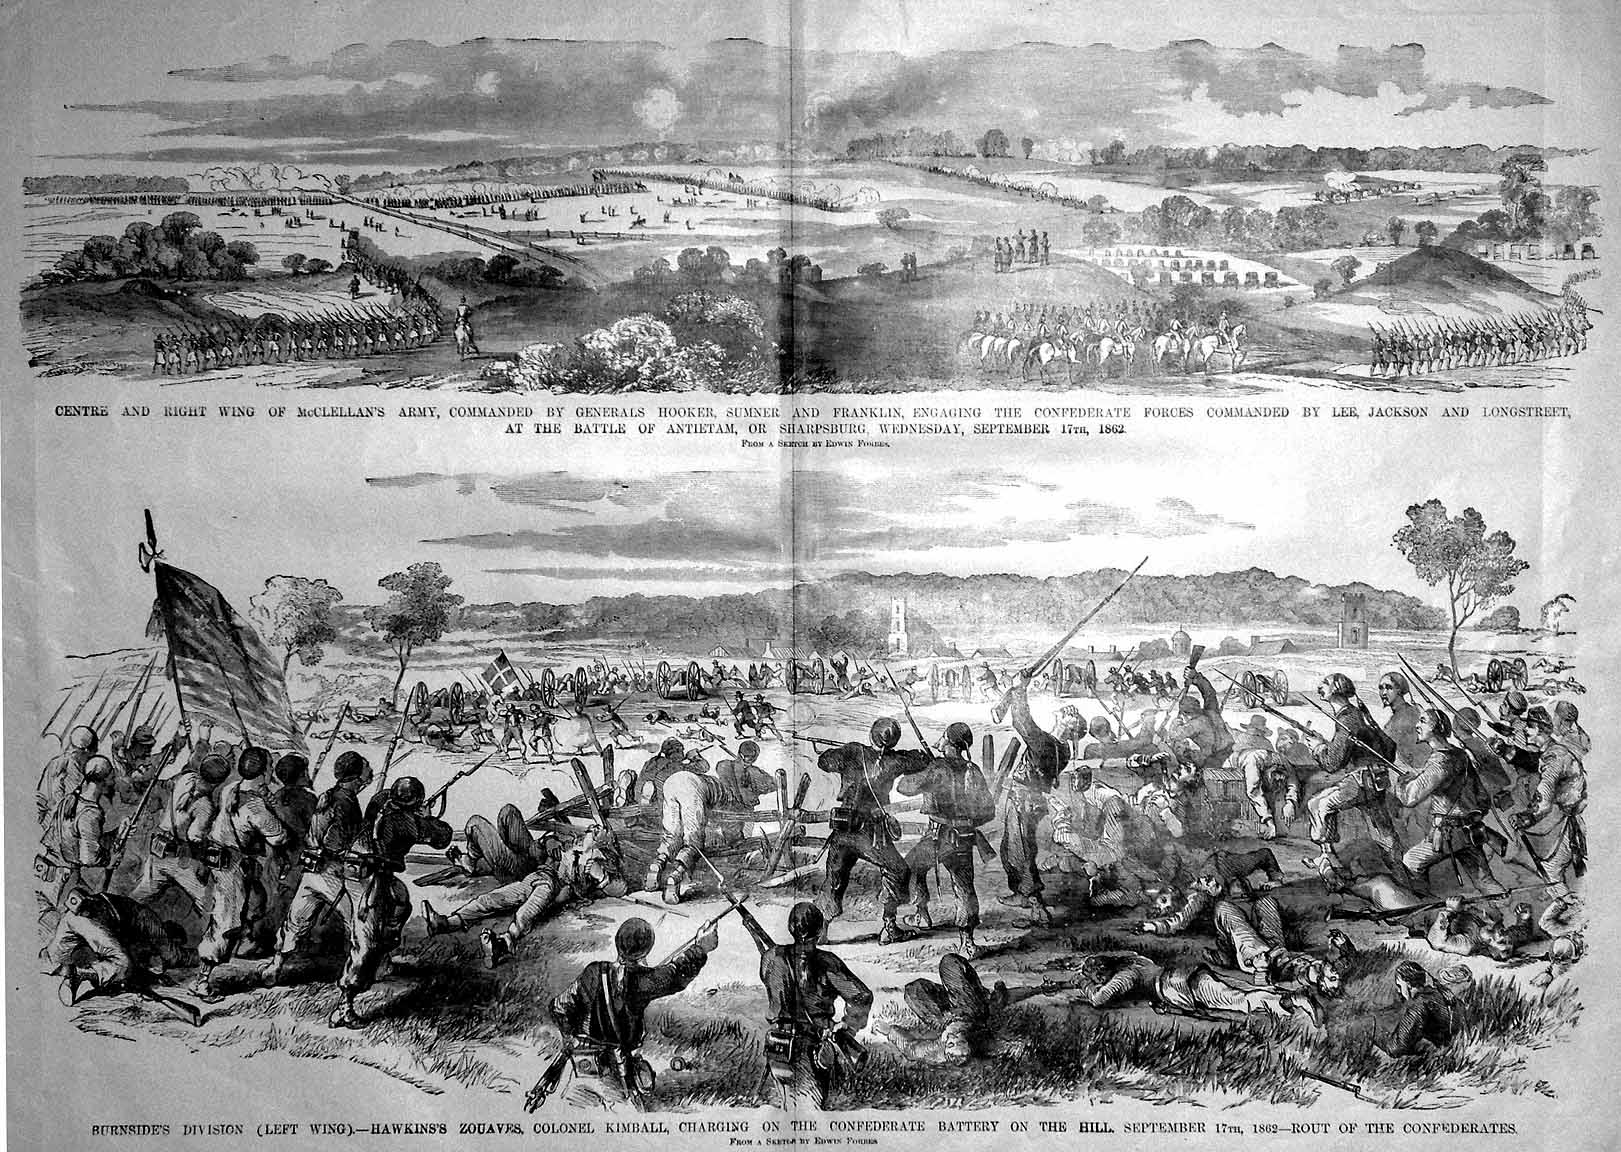 the battle of antietam The battle of antietam is known for not only being the bloodiest single day battle  in the american history but also for being the turning point in the civil war.